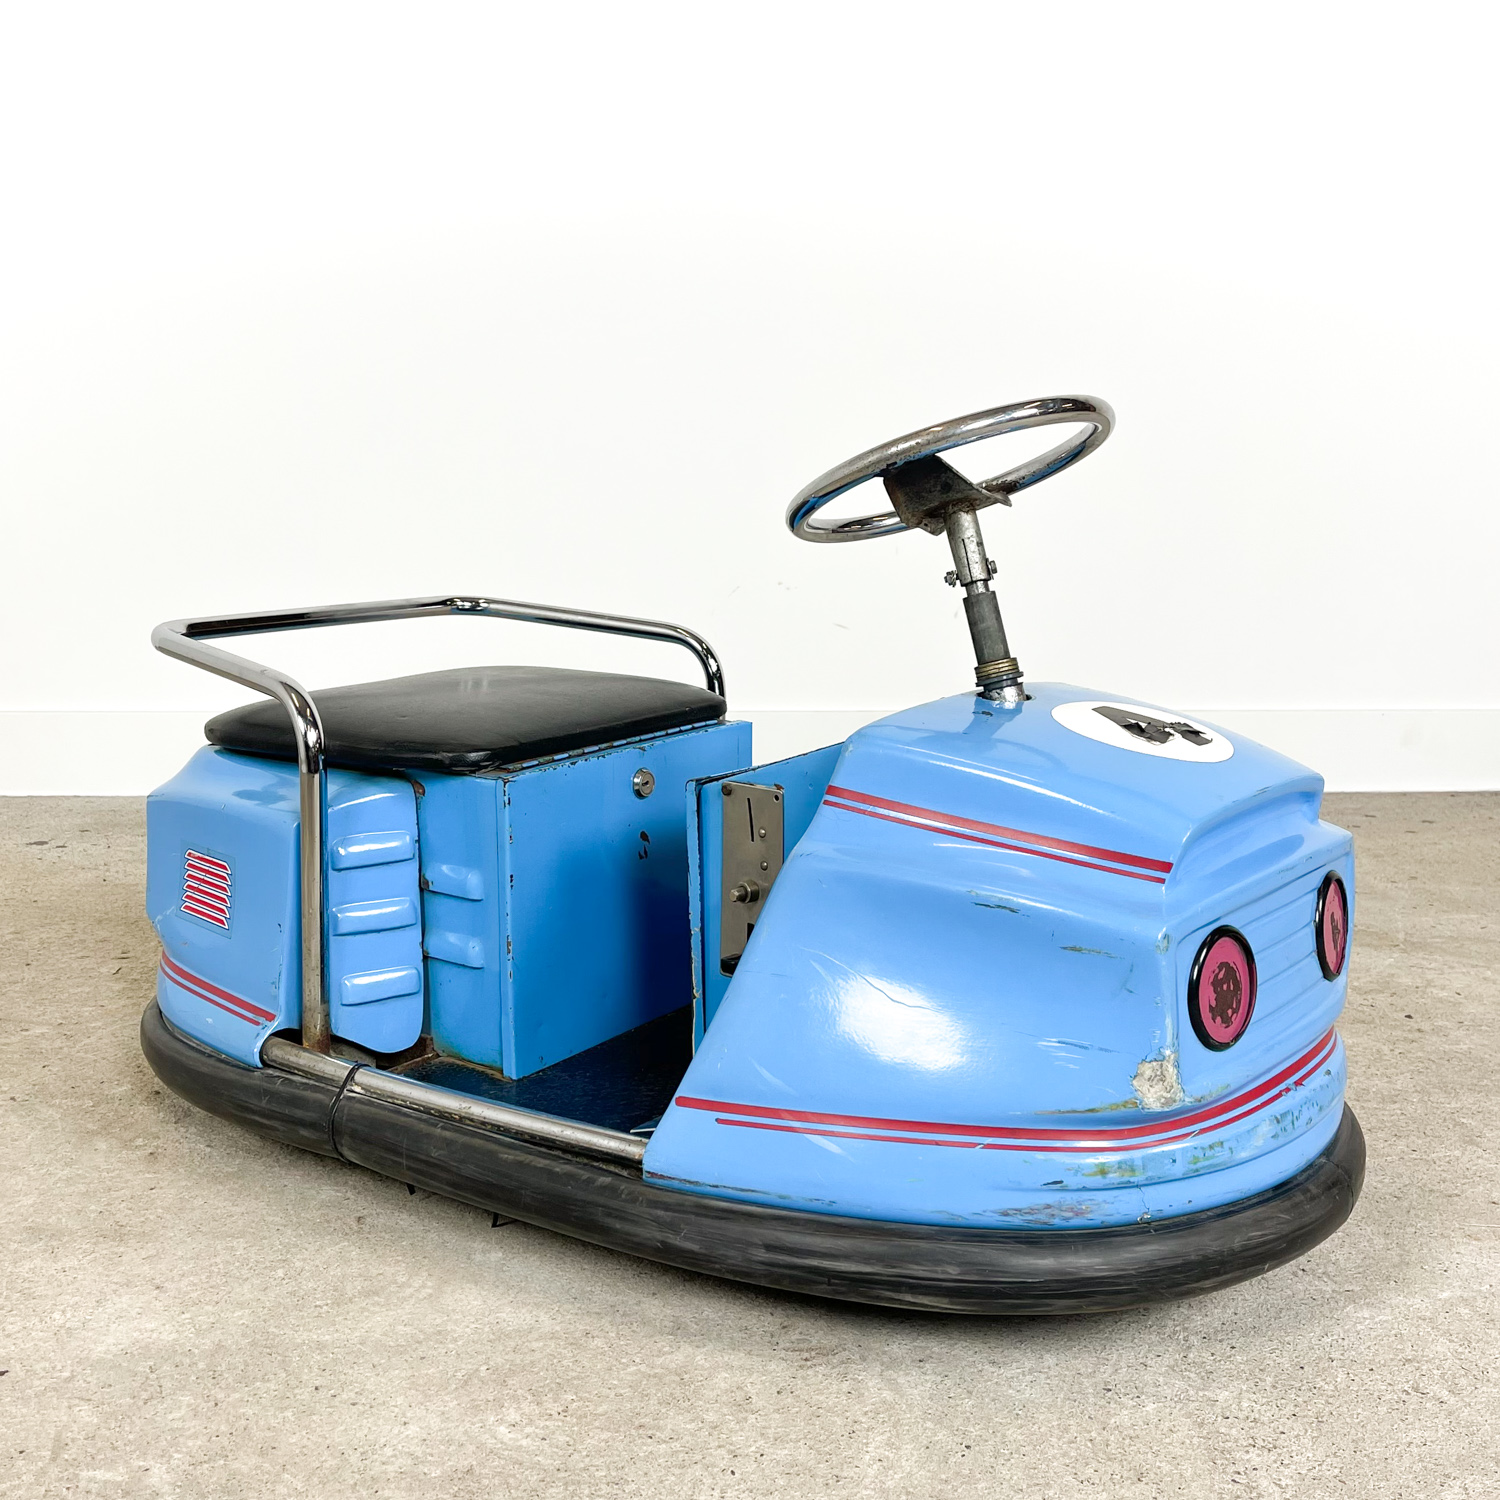 Small vintage electric auto scooter bumper car blue